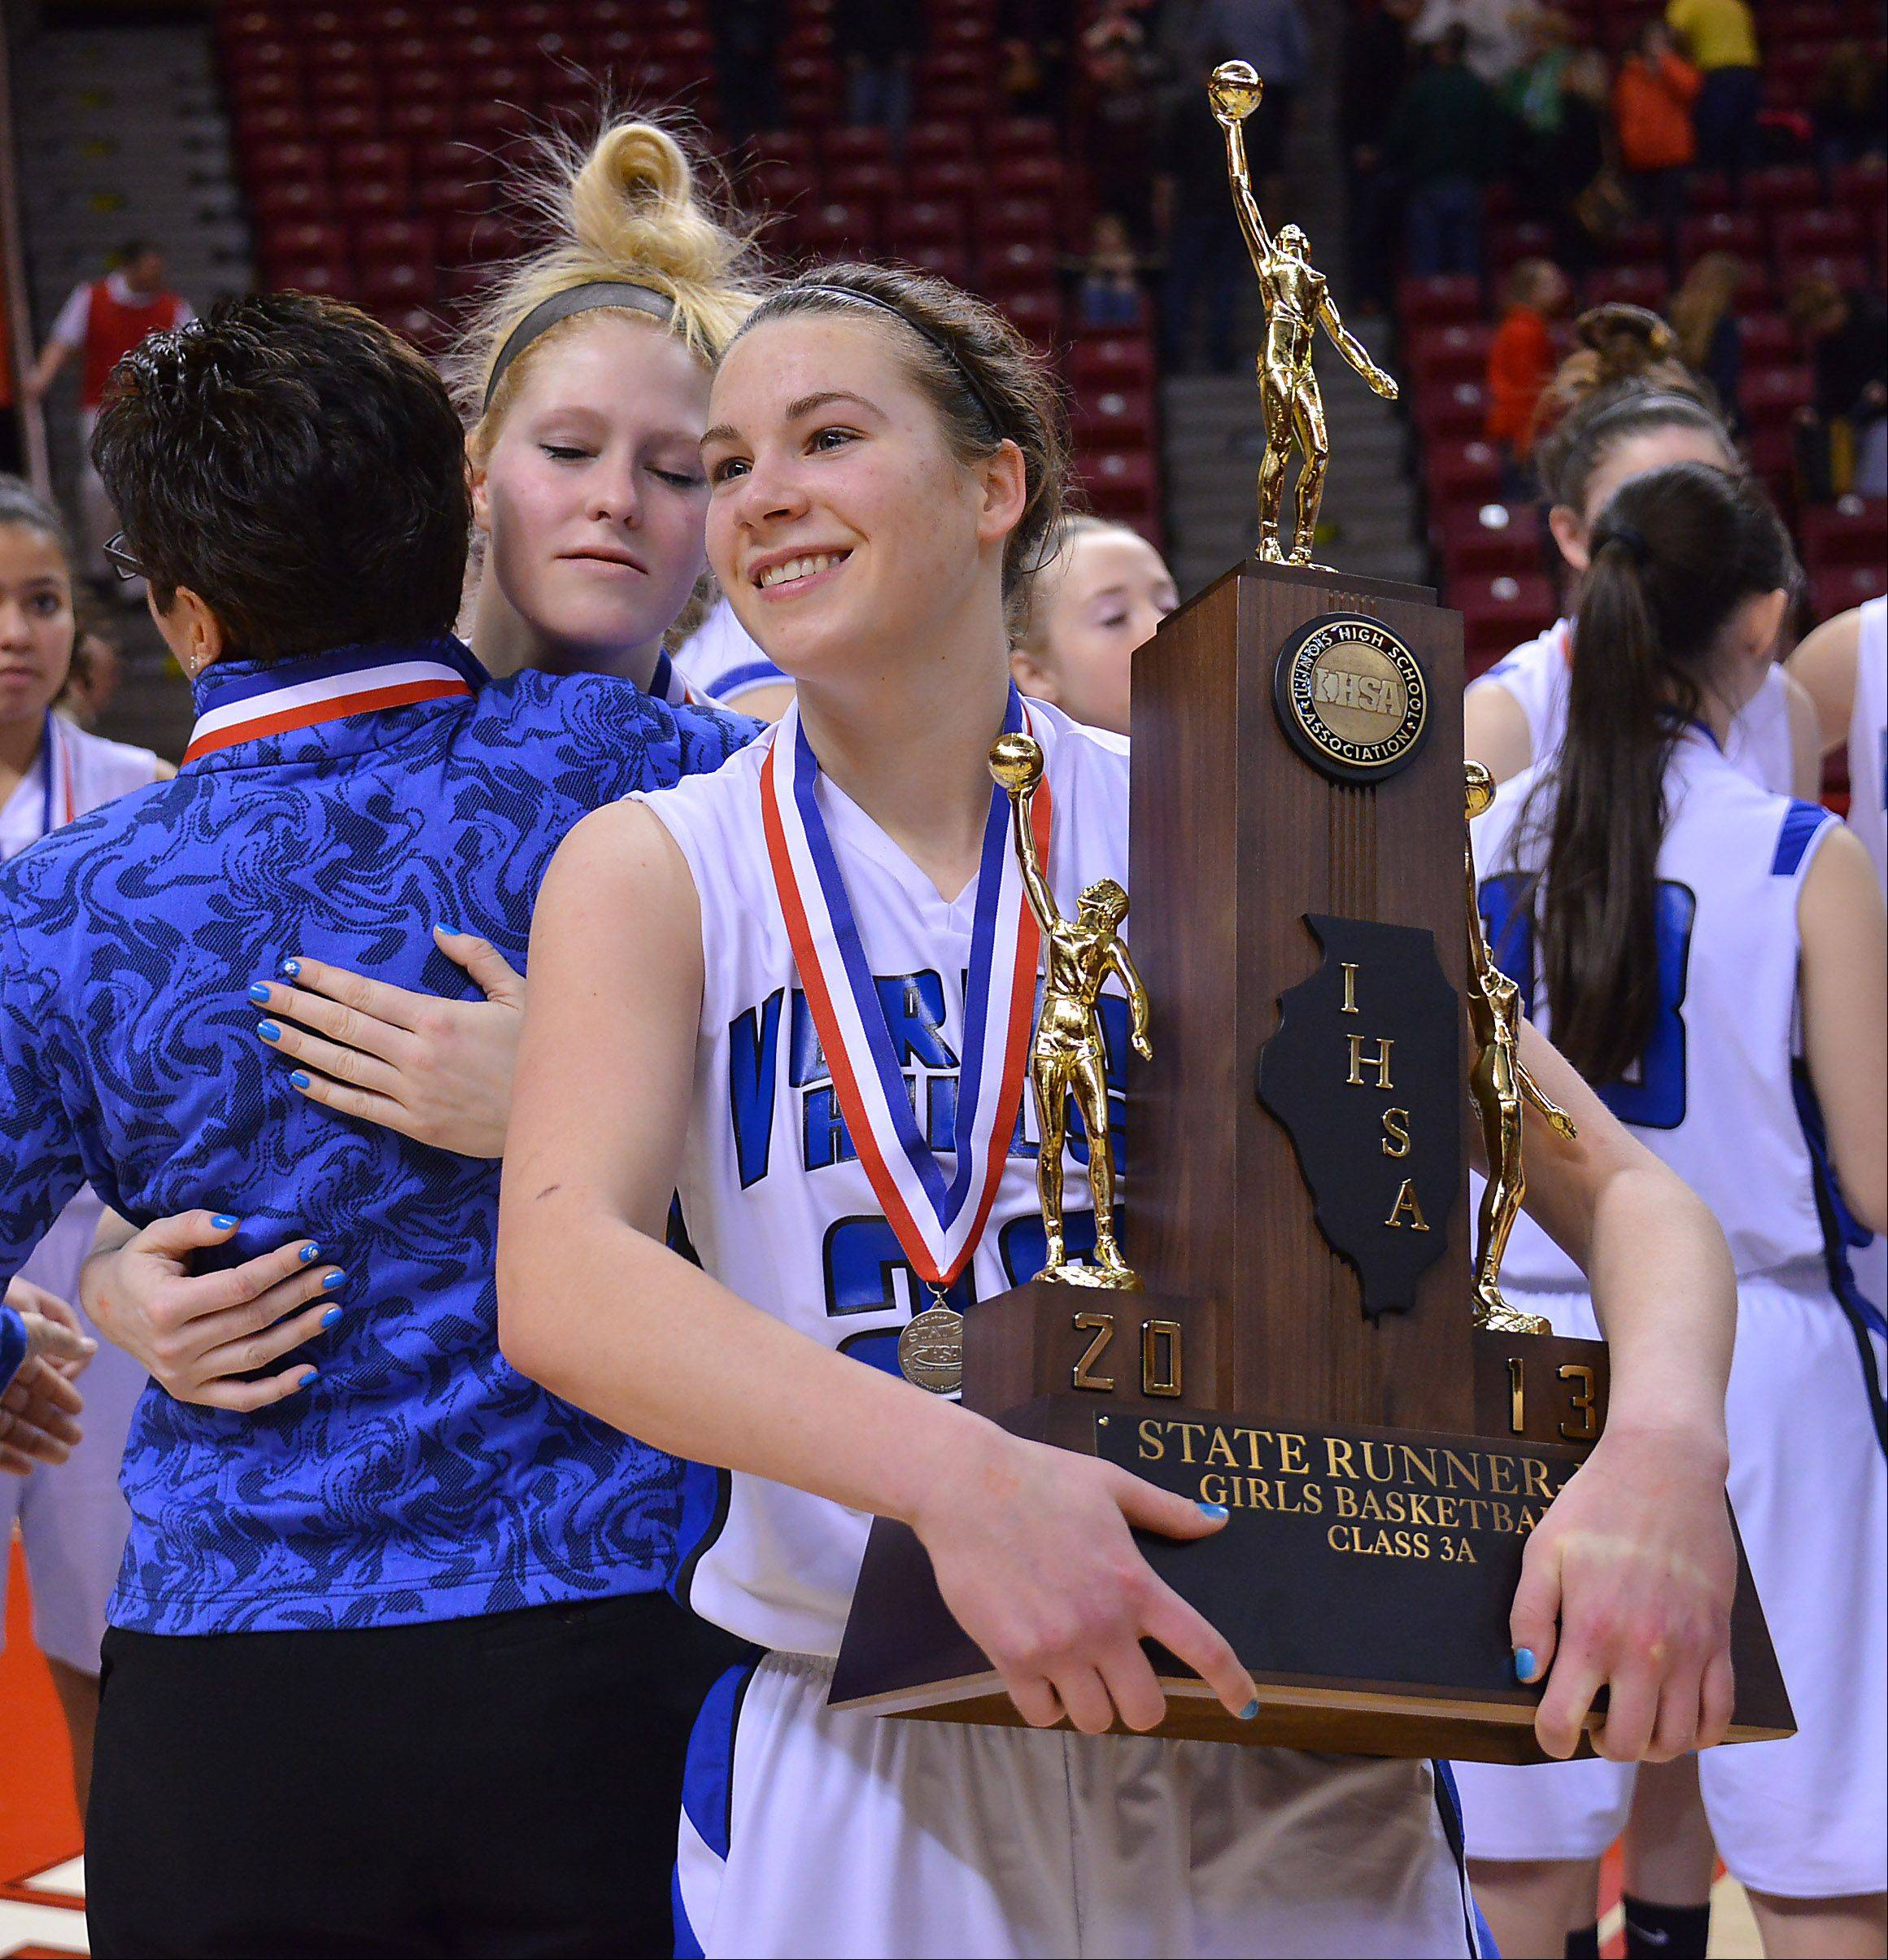 Vernon Hills' Brie Bahlmann is all smiles as she holds the second place trophy after losing to Quincy Notre Dame at the Class 3A state girls basketball championship game in Normal on Saturday.